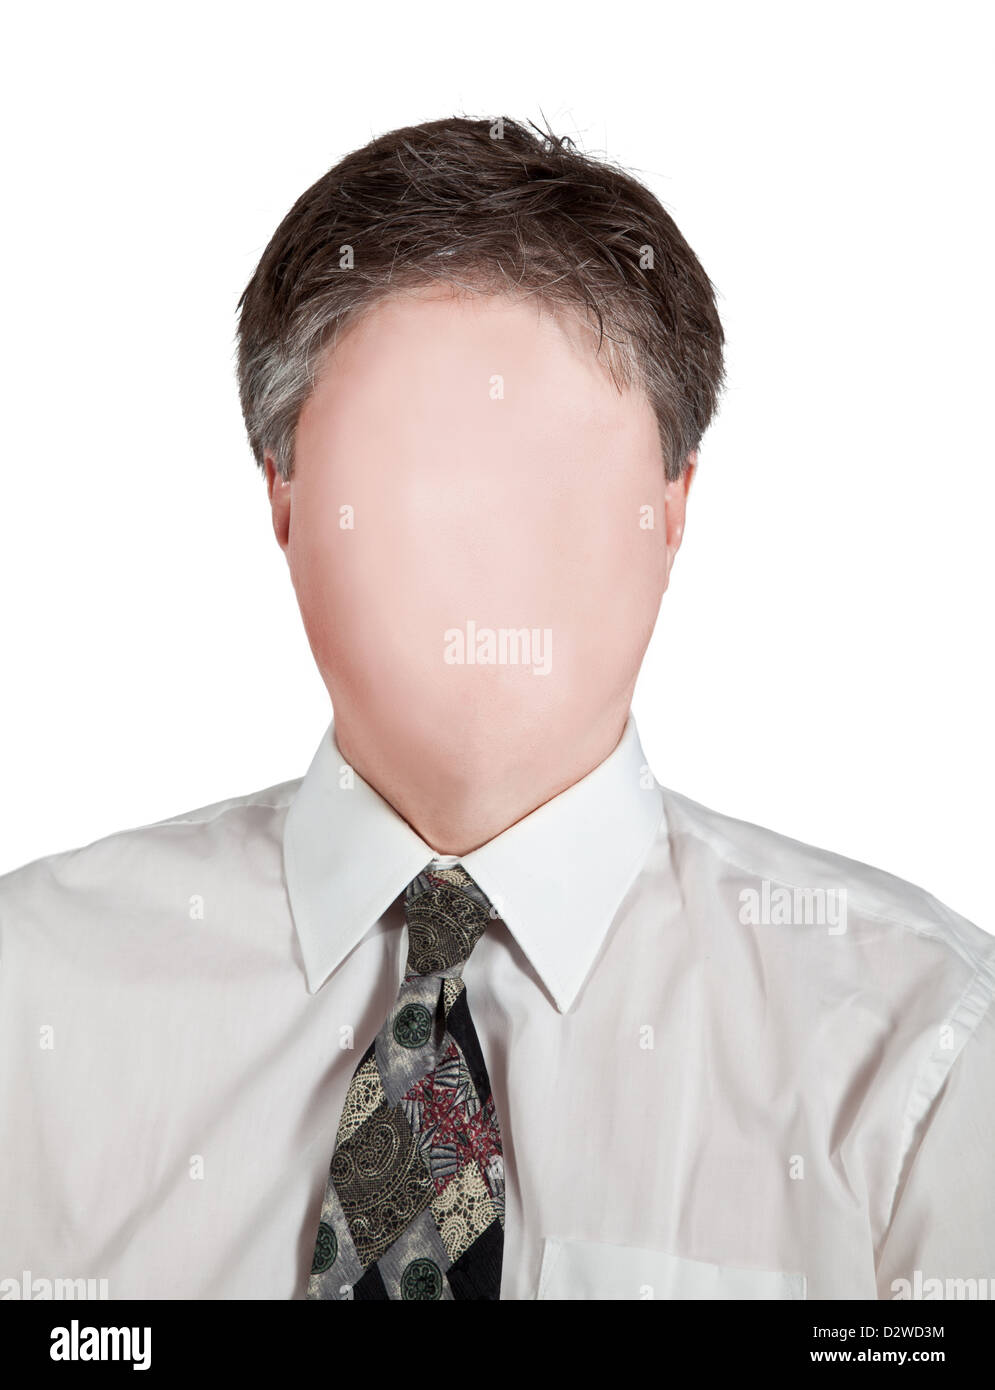 A faceless man shows identity theft as stealing a person's individuality. - Stock Image